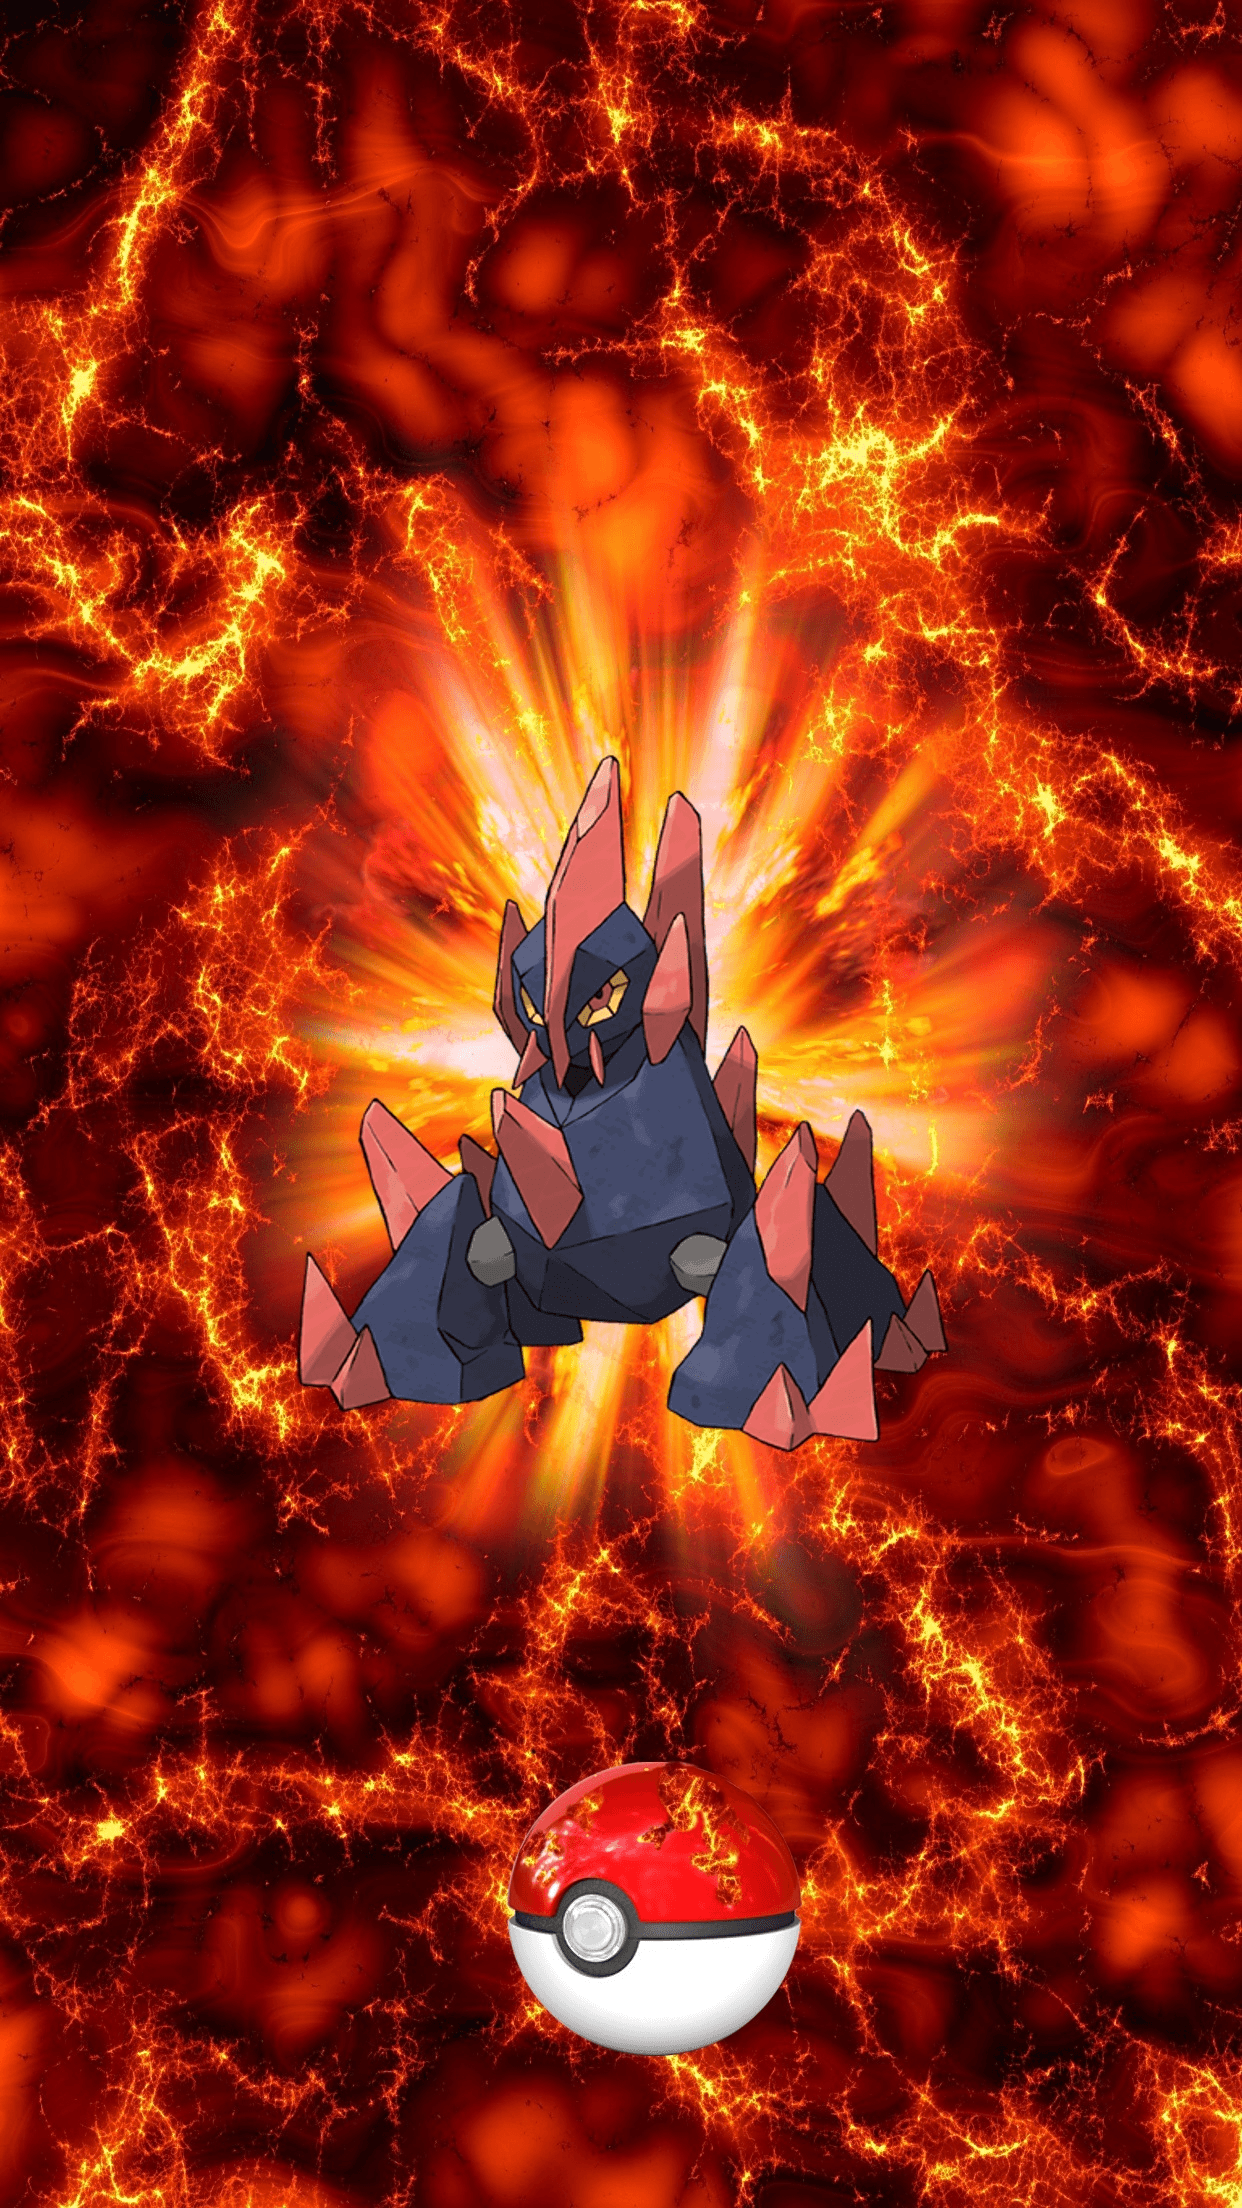 526 Fire Pokeball Gigalith 95 Gigaiath 94 Boldore | Wallpaper